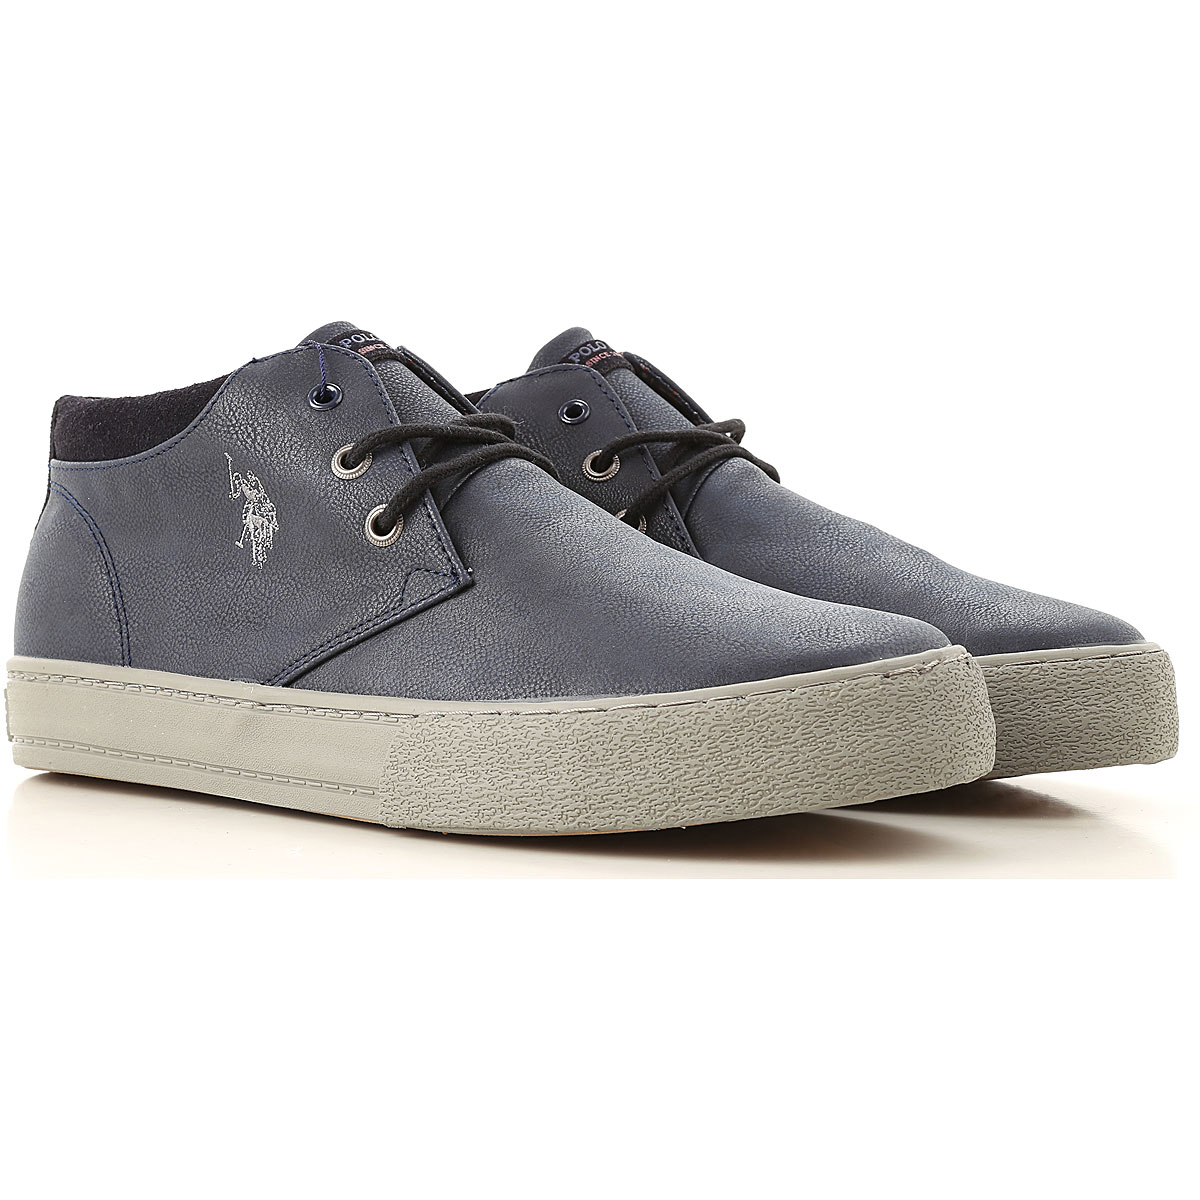 Image of U.S. Polo Sneakers for Men, Navy Blue, Leather, 2017, UK 6 - EUR 40 - US 7 UK 7 - EUR 41 - US 8 UK 8 - EUR 42 - US 9 UK 9 - EUR 43 - US 10 UK 10 - EUR 44 - US 11